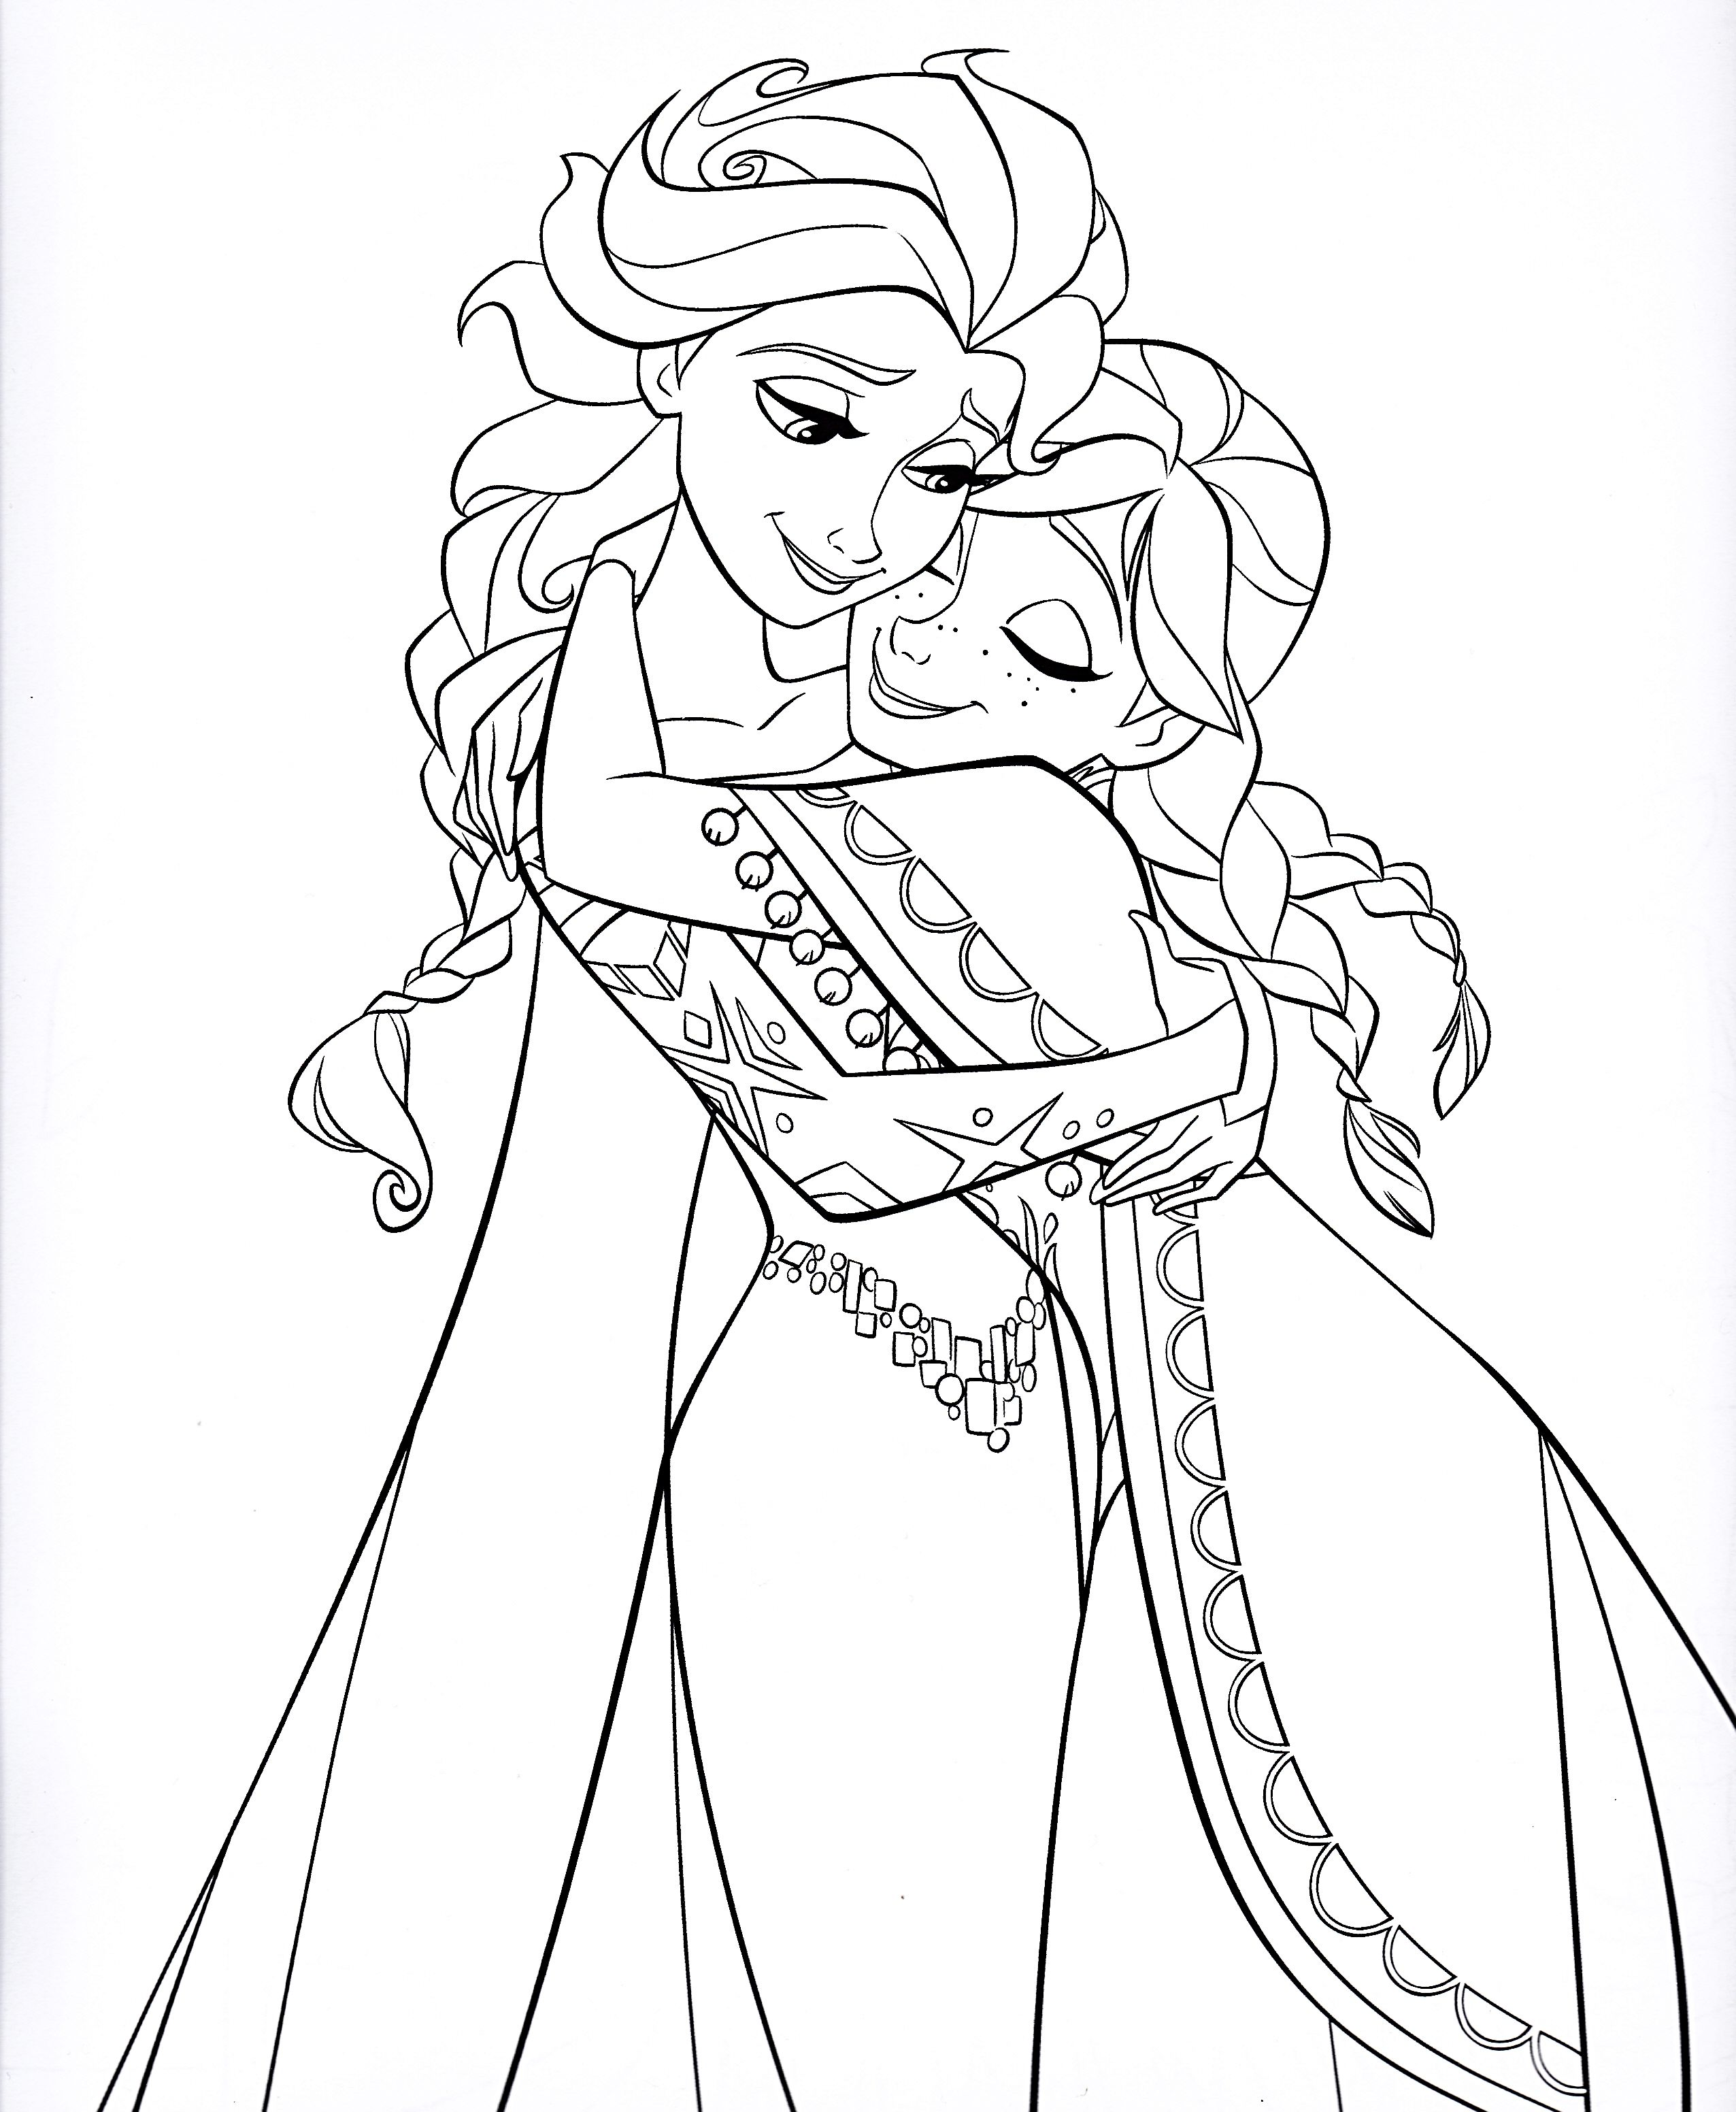 Disney frozen coloring sheets walt disney coloring pages queen elsa princess anna